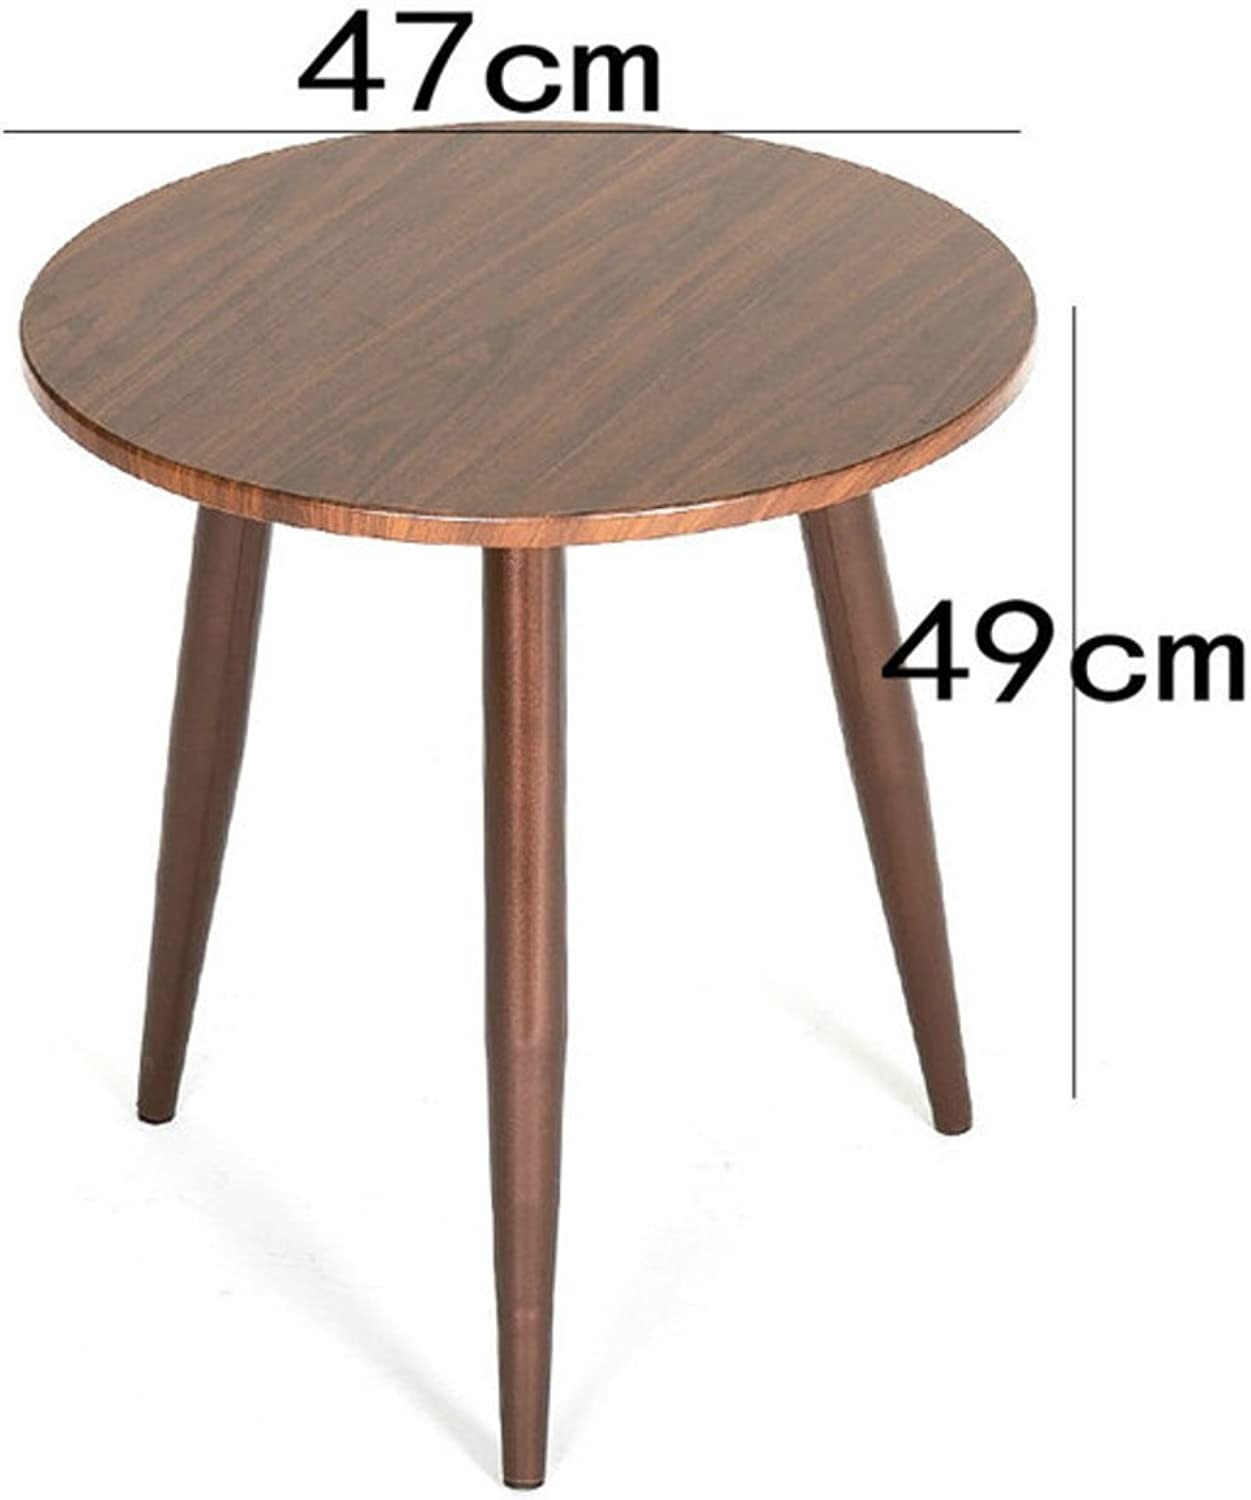 Wooden End Table,Side Table with Metal and MDF Top-D 47x49cm(19x19inch)